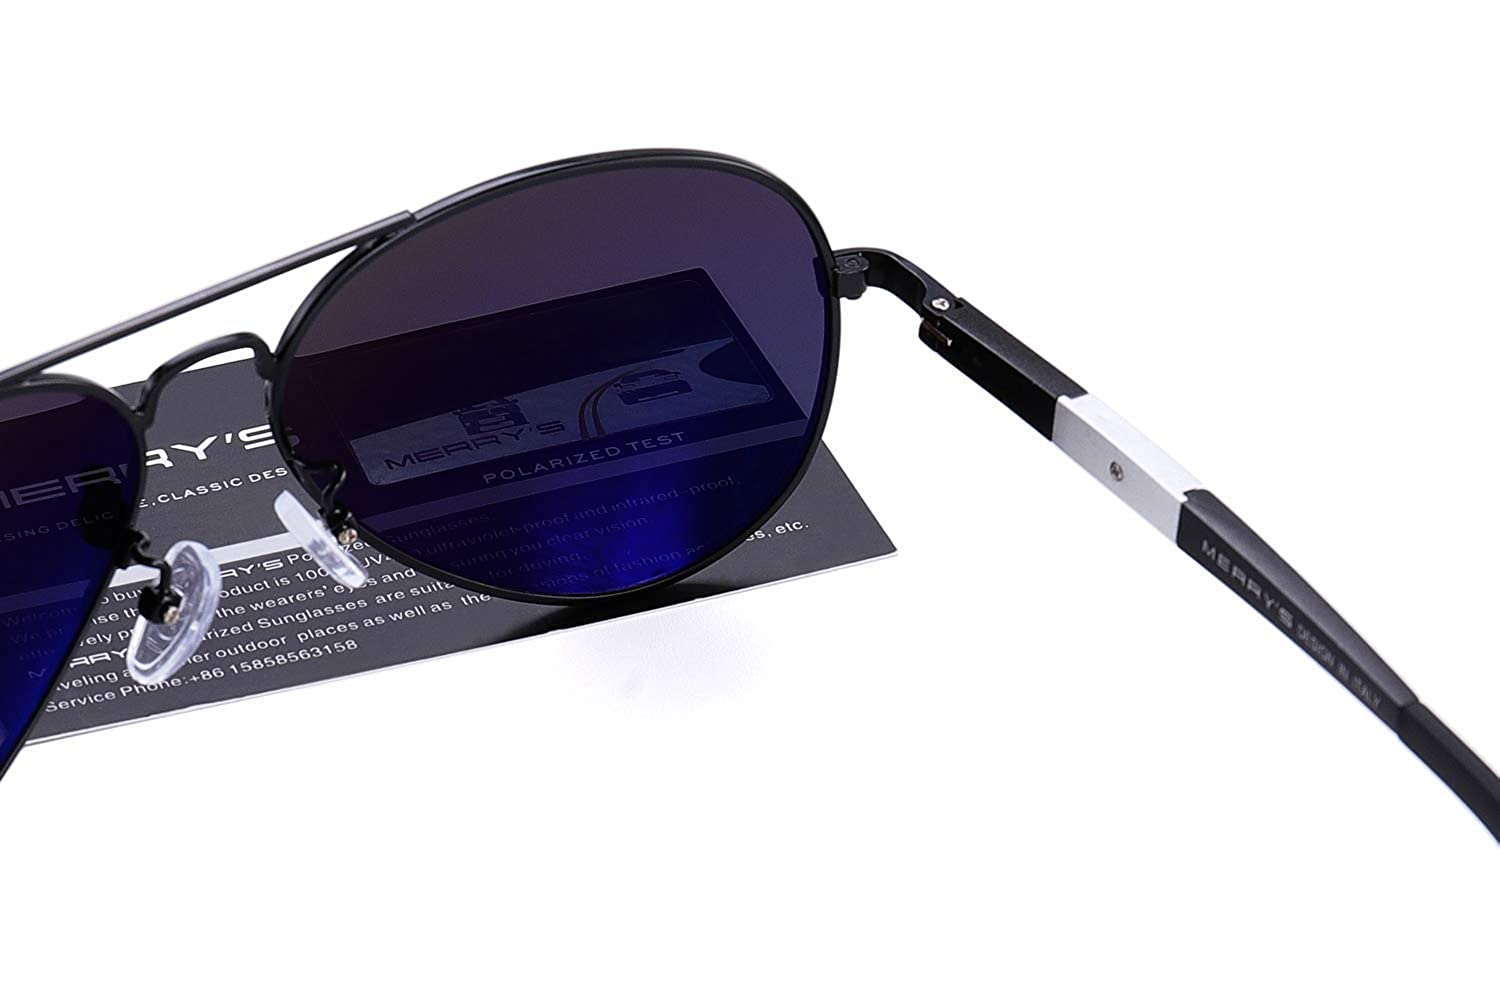 ff11edb234 MERRY S Men HD Polarized Sunglasses Aluminum Magnesium Driving Sun Glasses  S8285 (Black)  Amazon.co.uk  Clothing